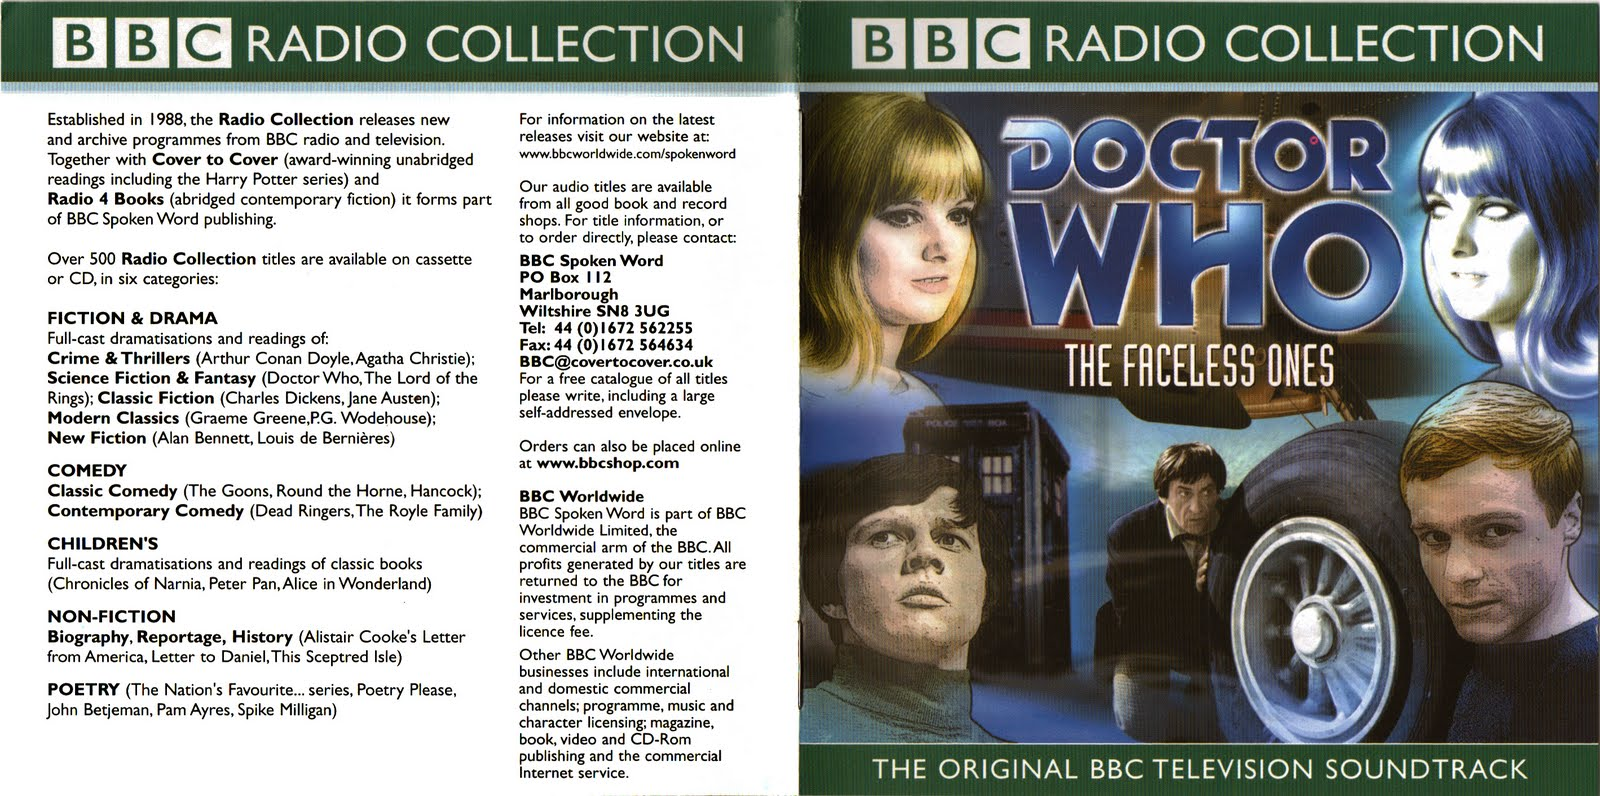 Doctor Who Bbc Radio Collection The Faceless Ones Cd Cover